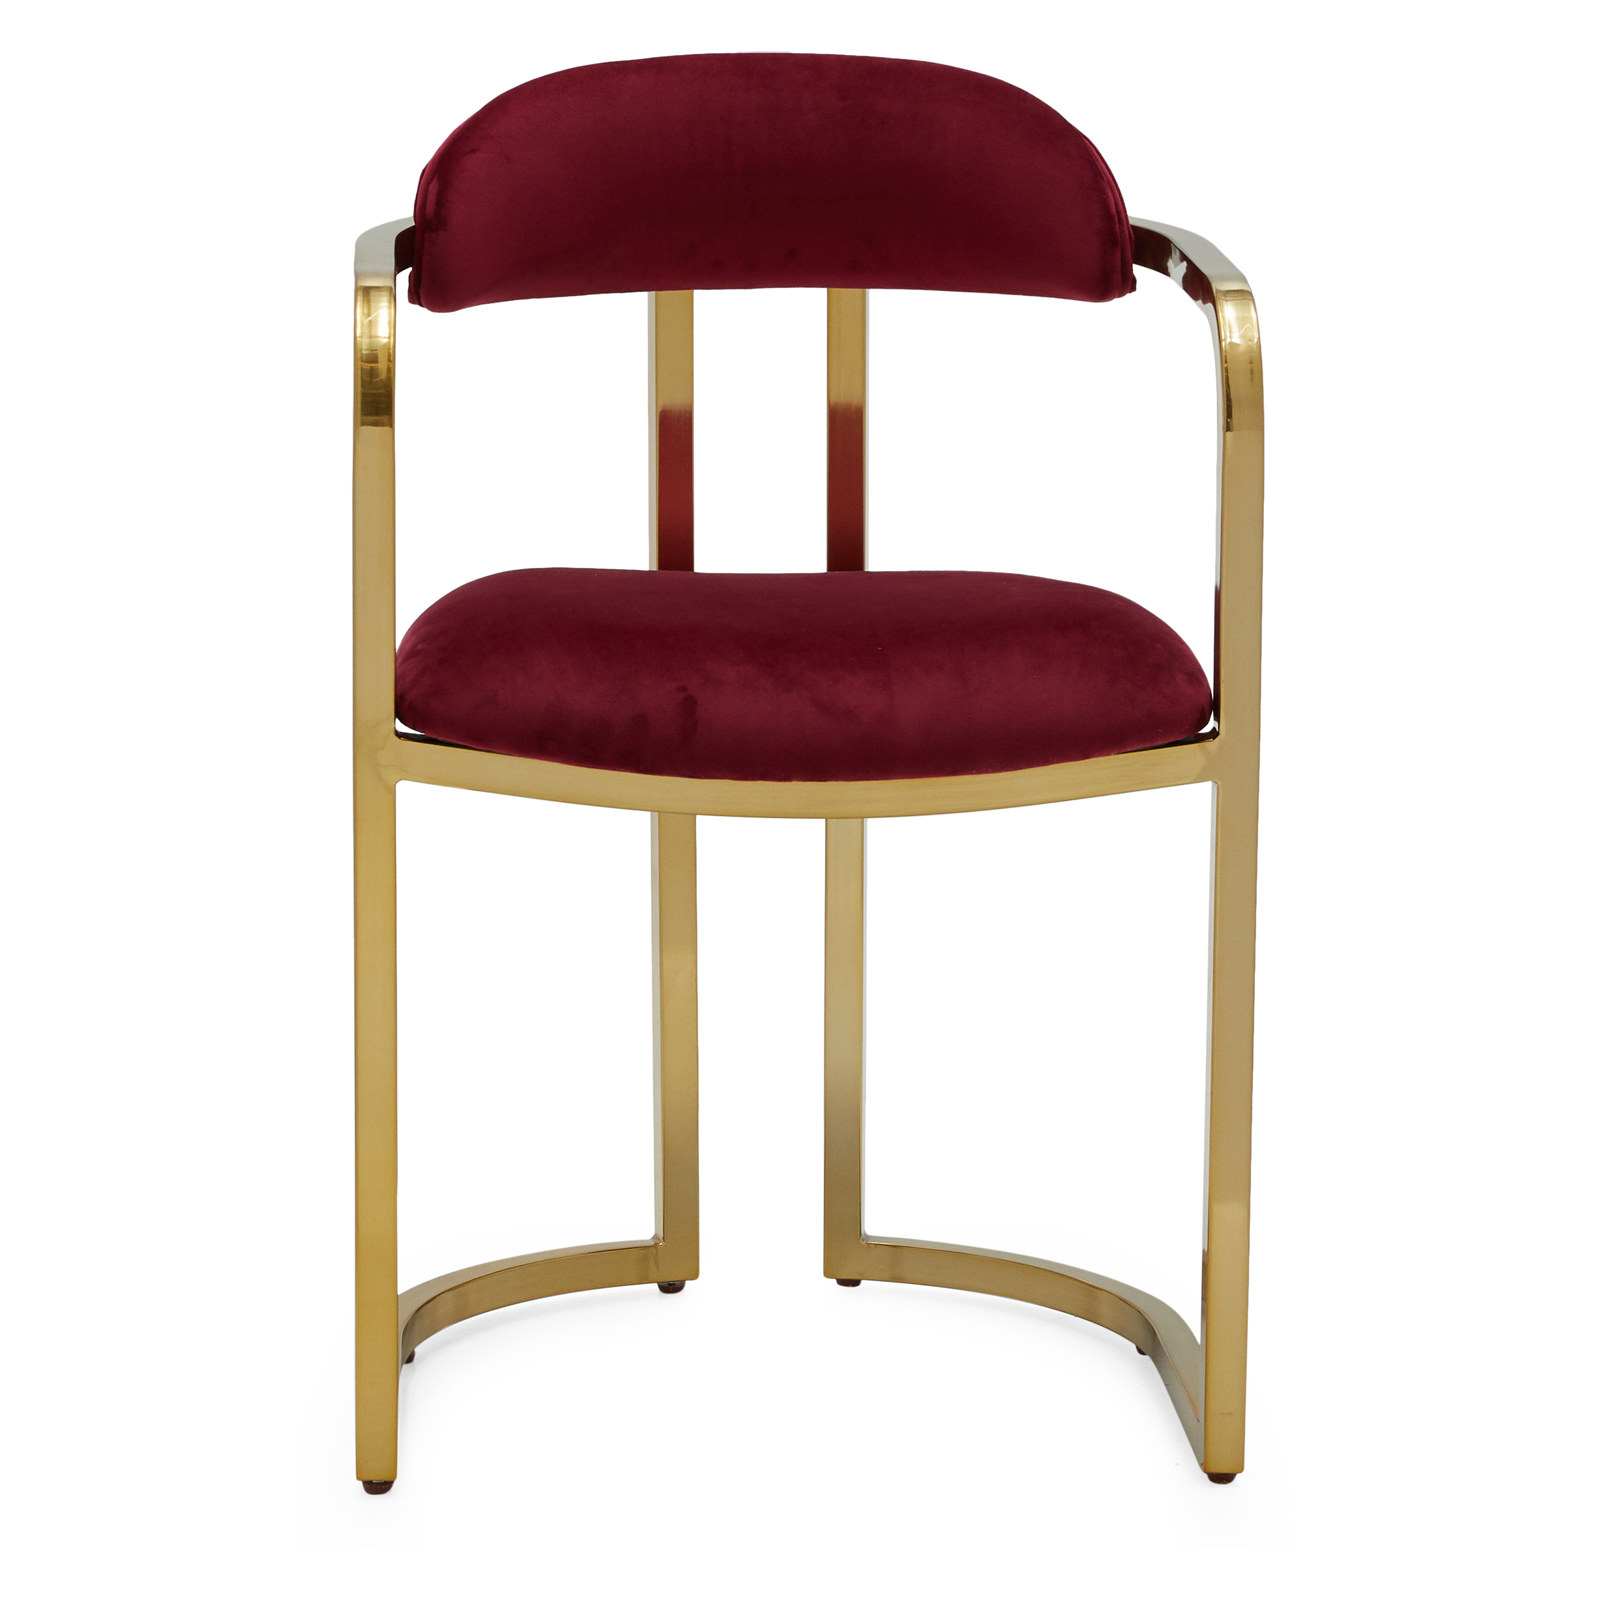 The chair, which has a burgundy velvet seat and upper back support, and two Art Deco arches in its frame